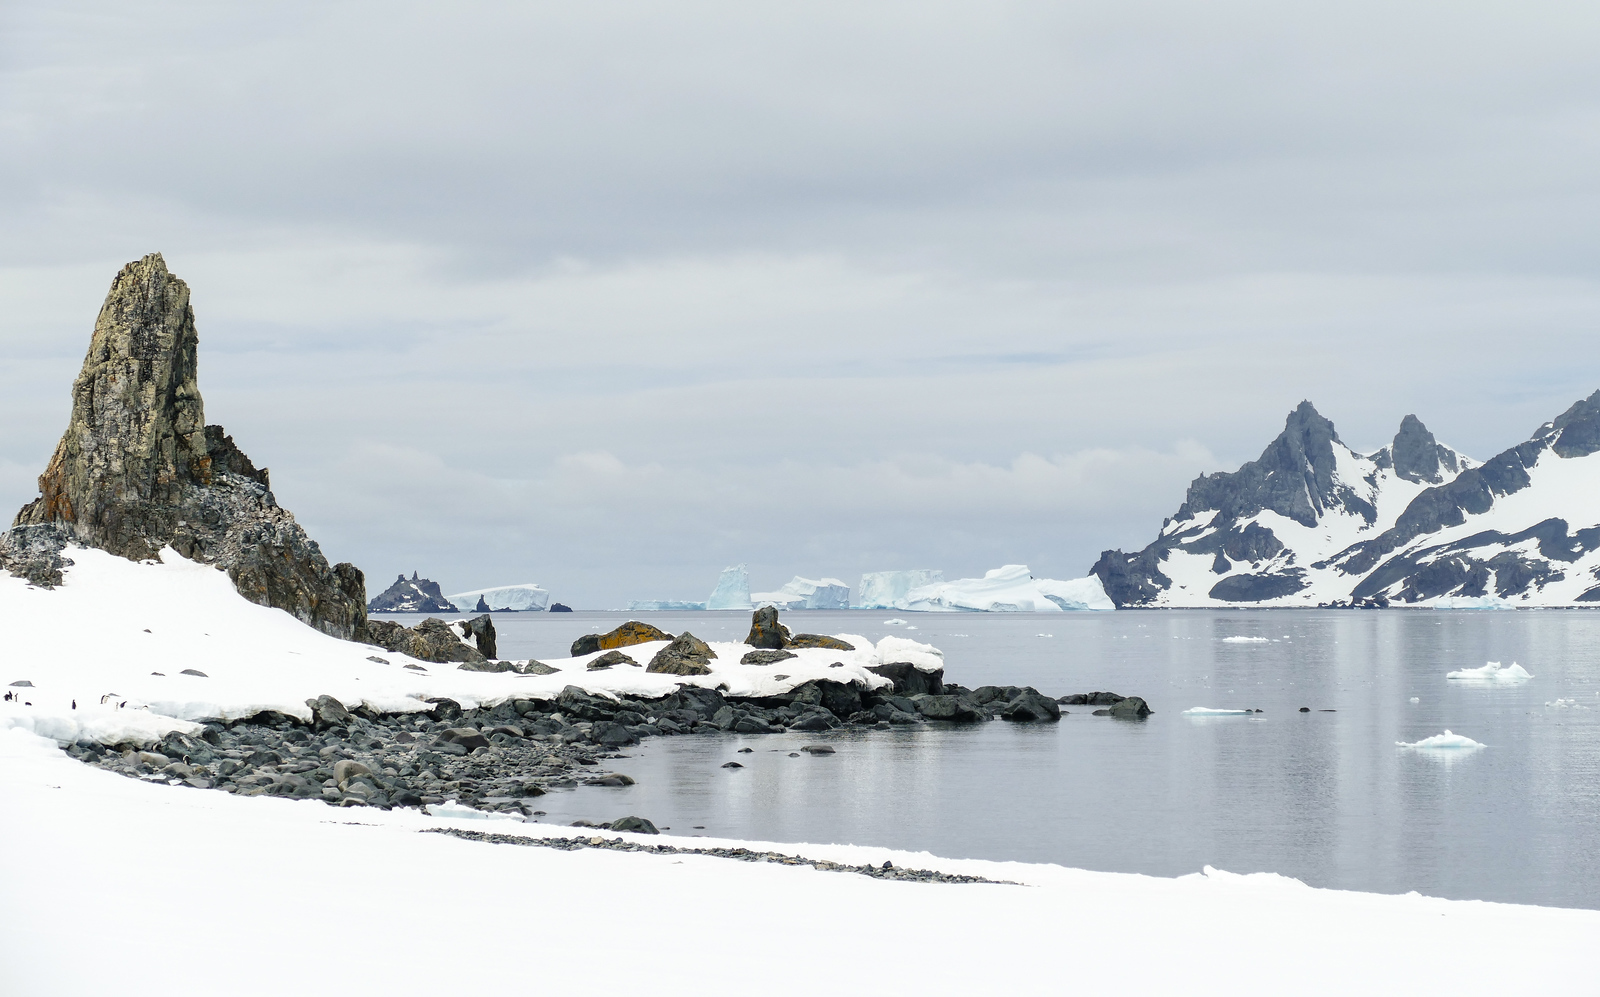 Icebergs, mountains and more set the scene at Half Moon Island in Antarctica.